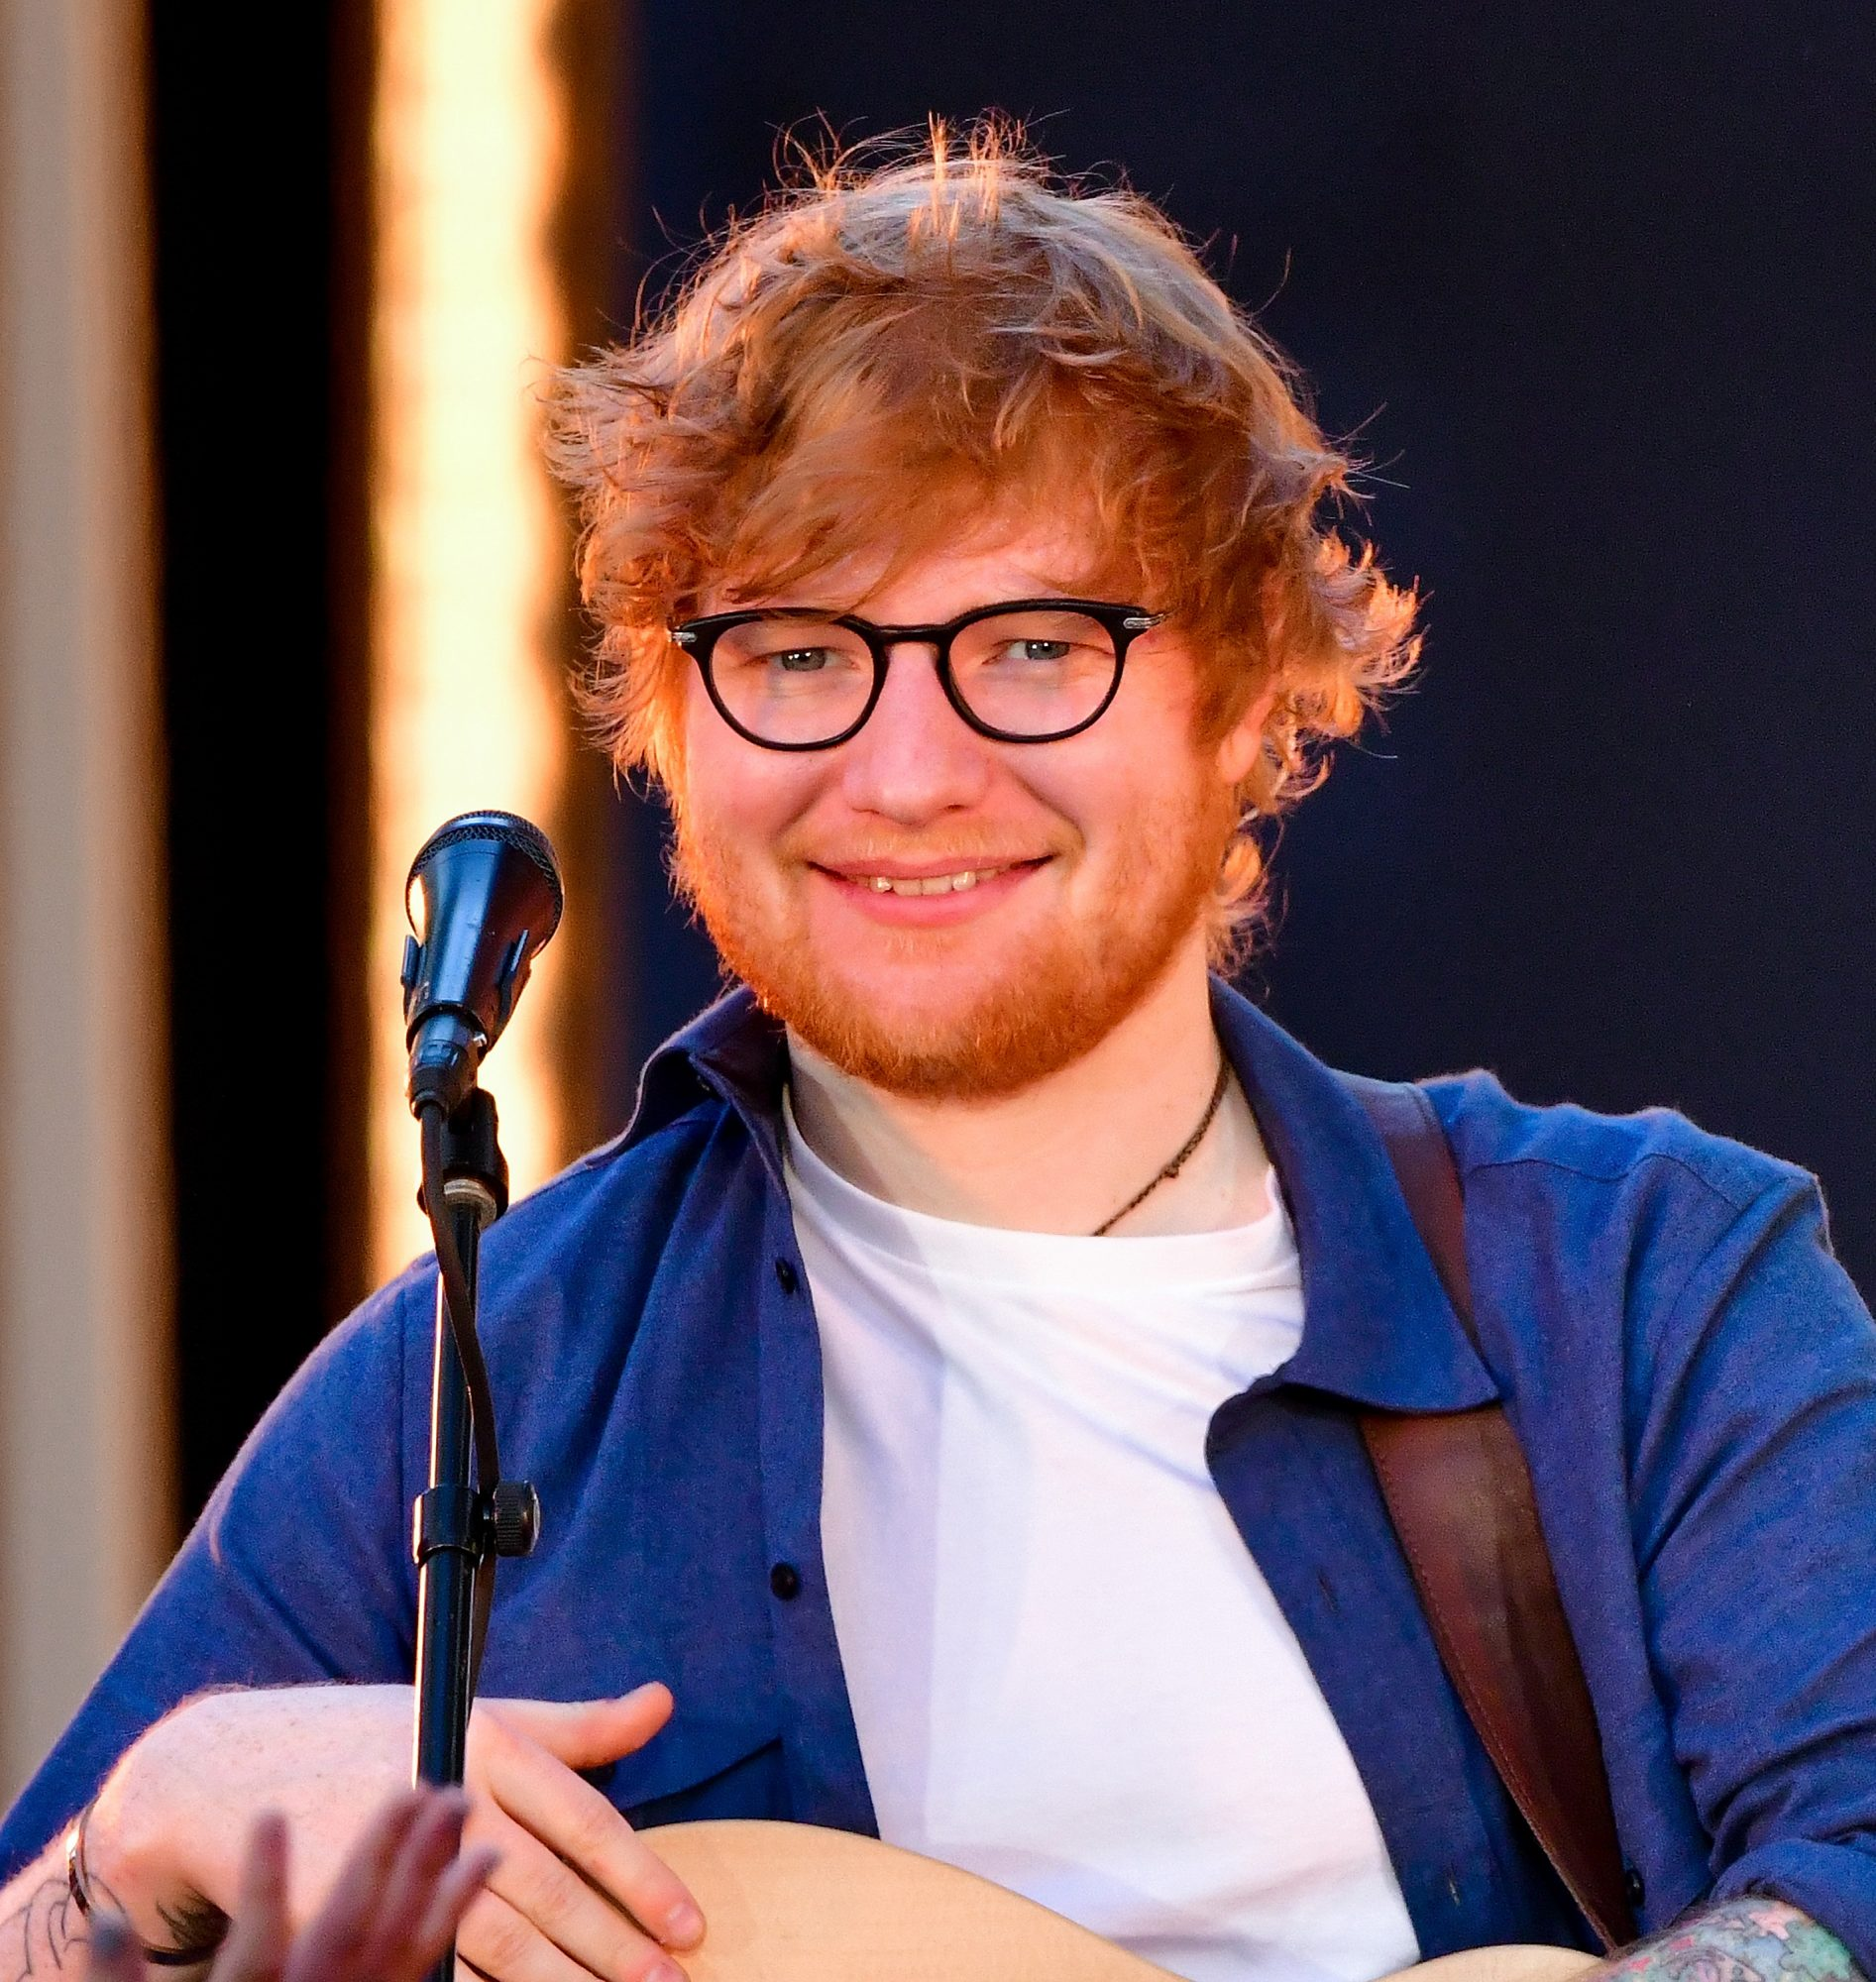 ed-sheeran-glasses-mic